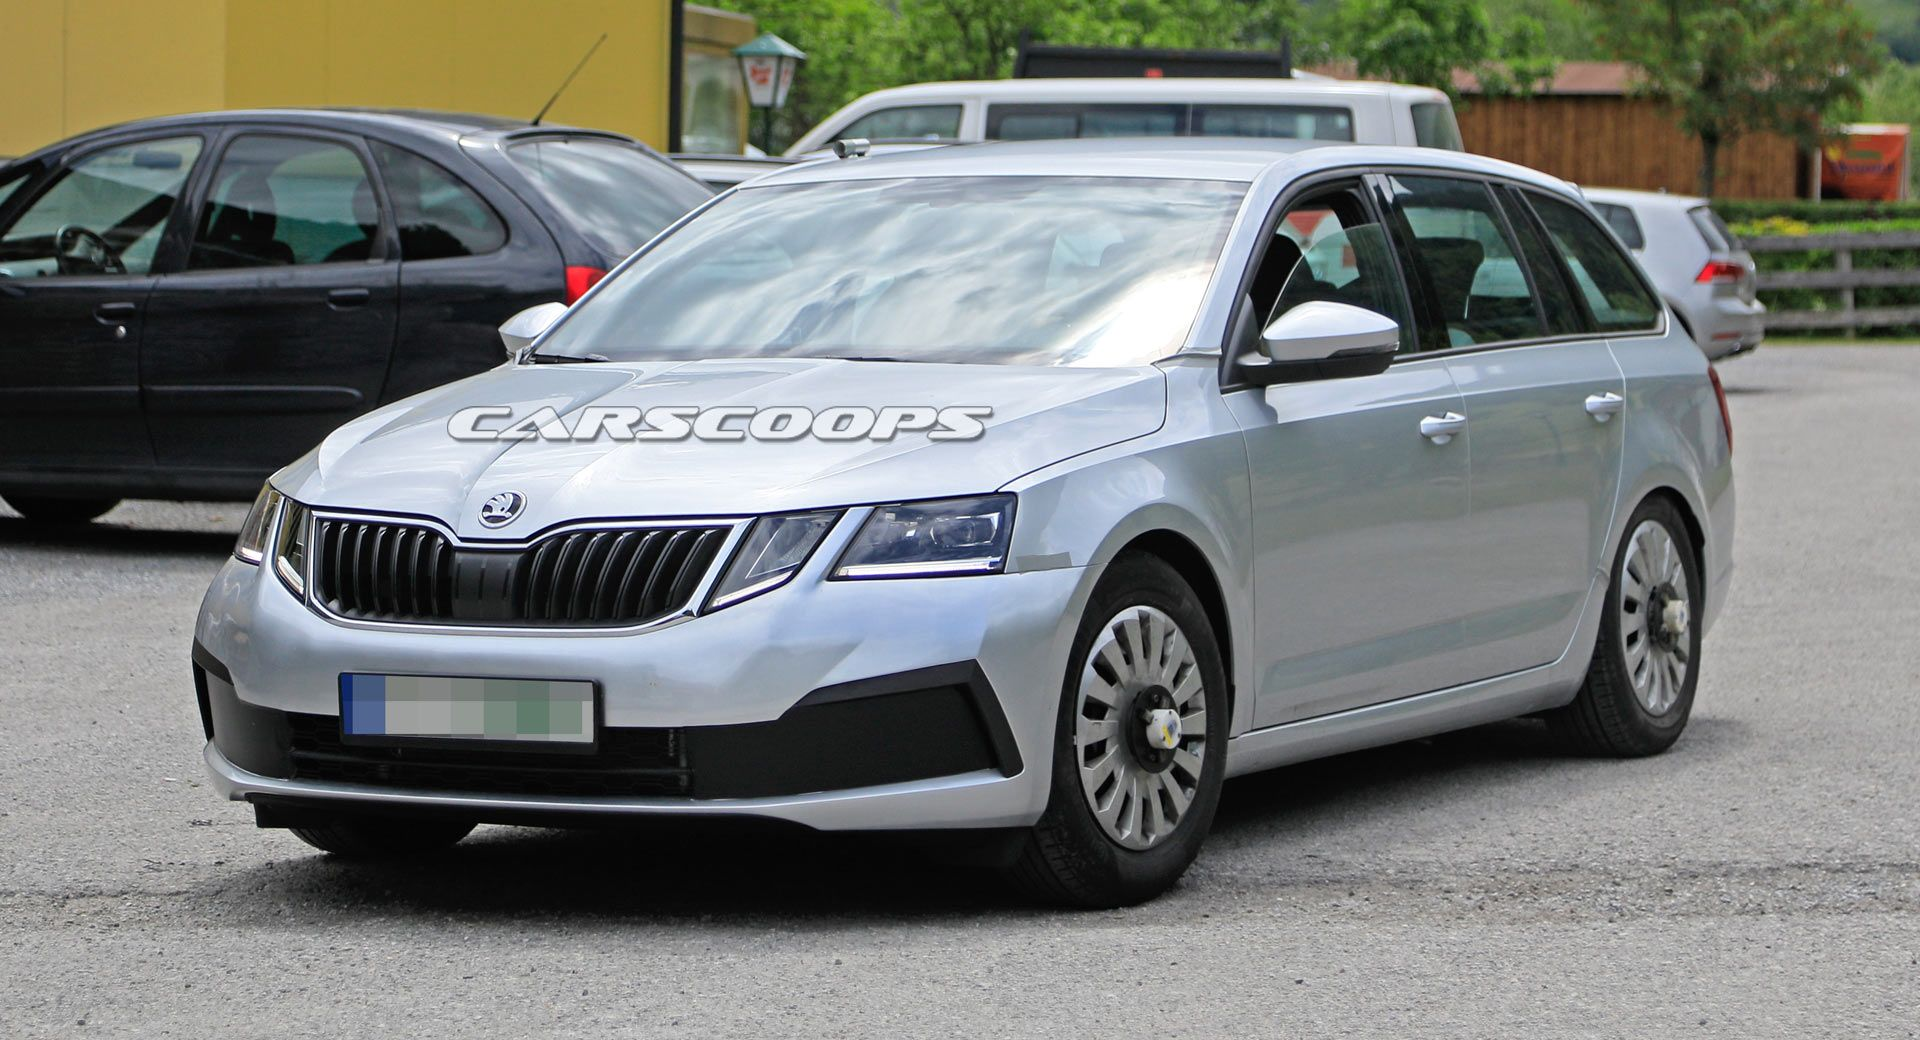 14 The Spy Shots Skoda Superb Engine